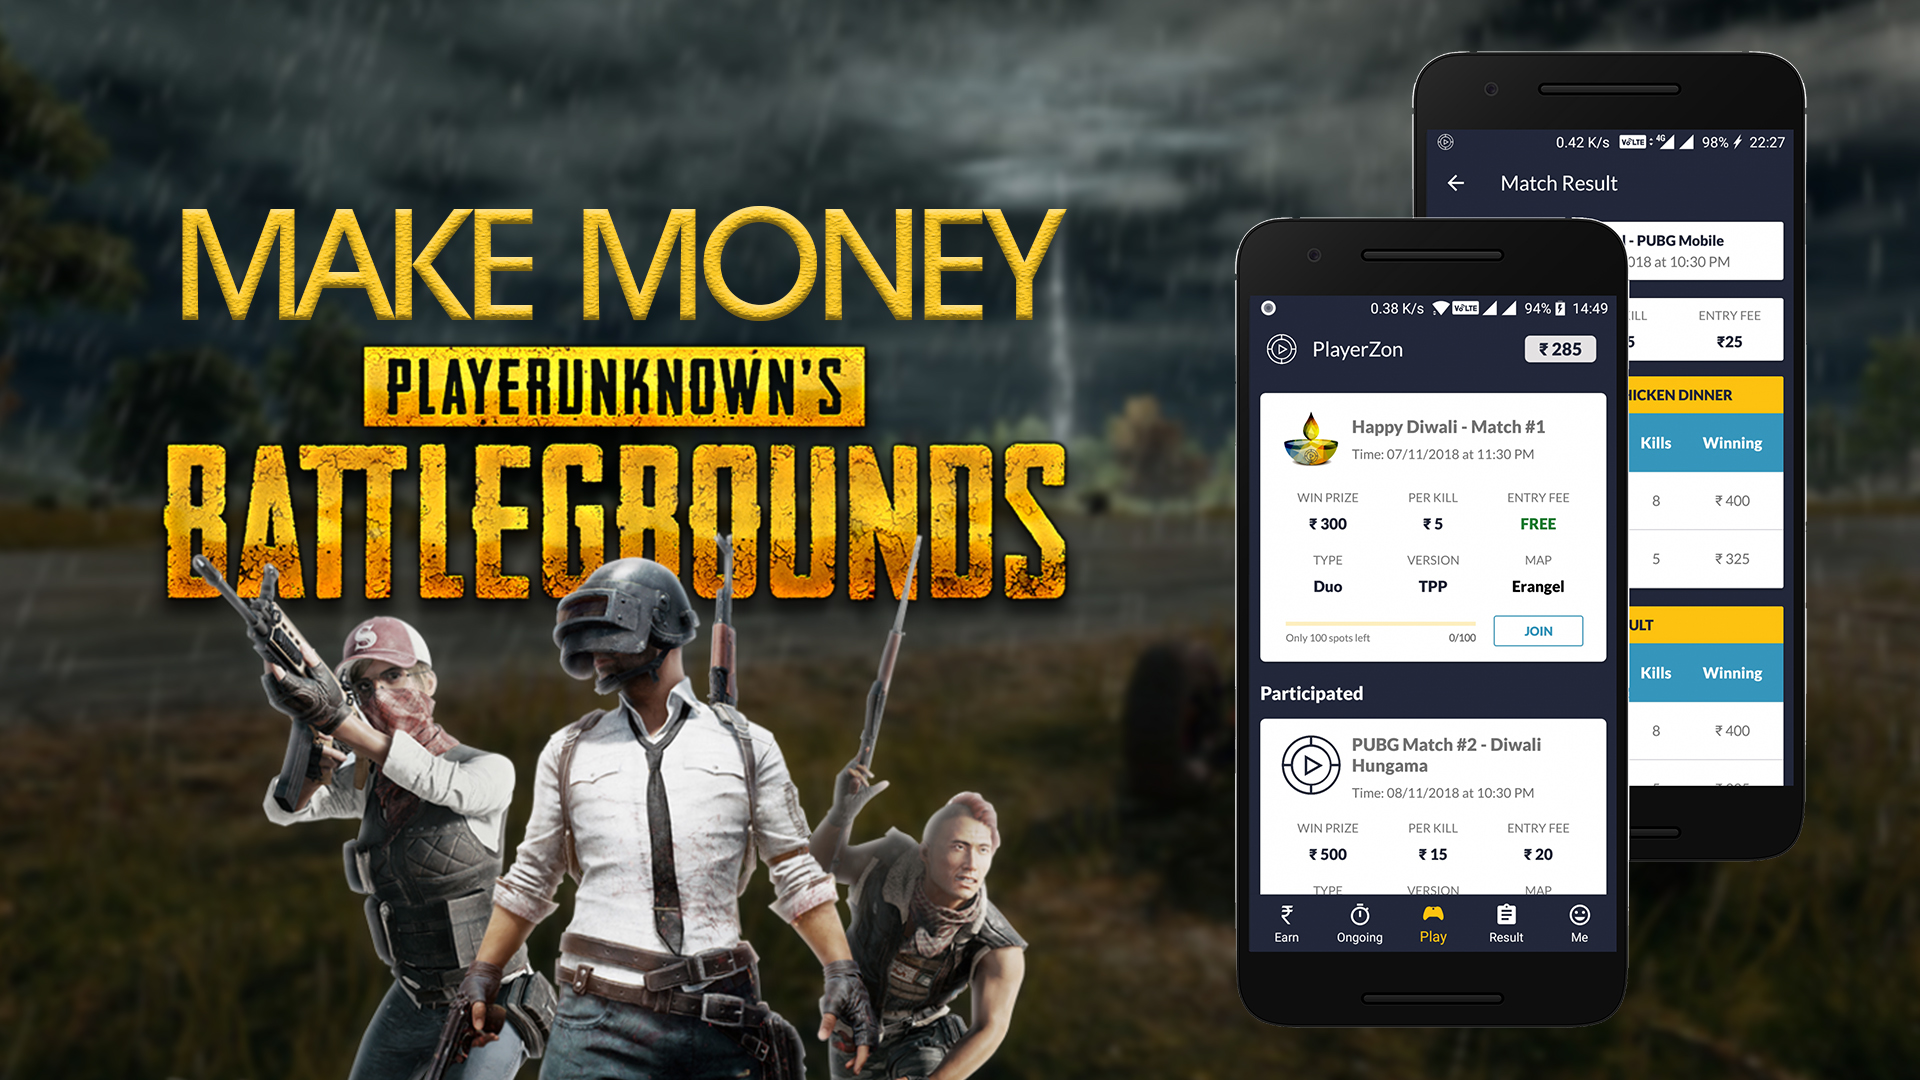 How to Make Money by Playing PUBG Mobile - PlayerZon App